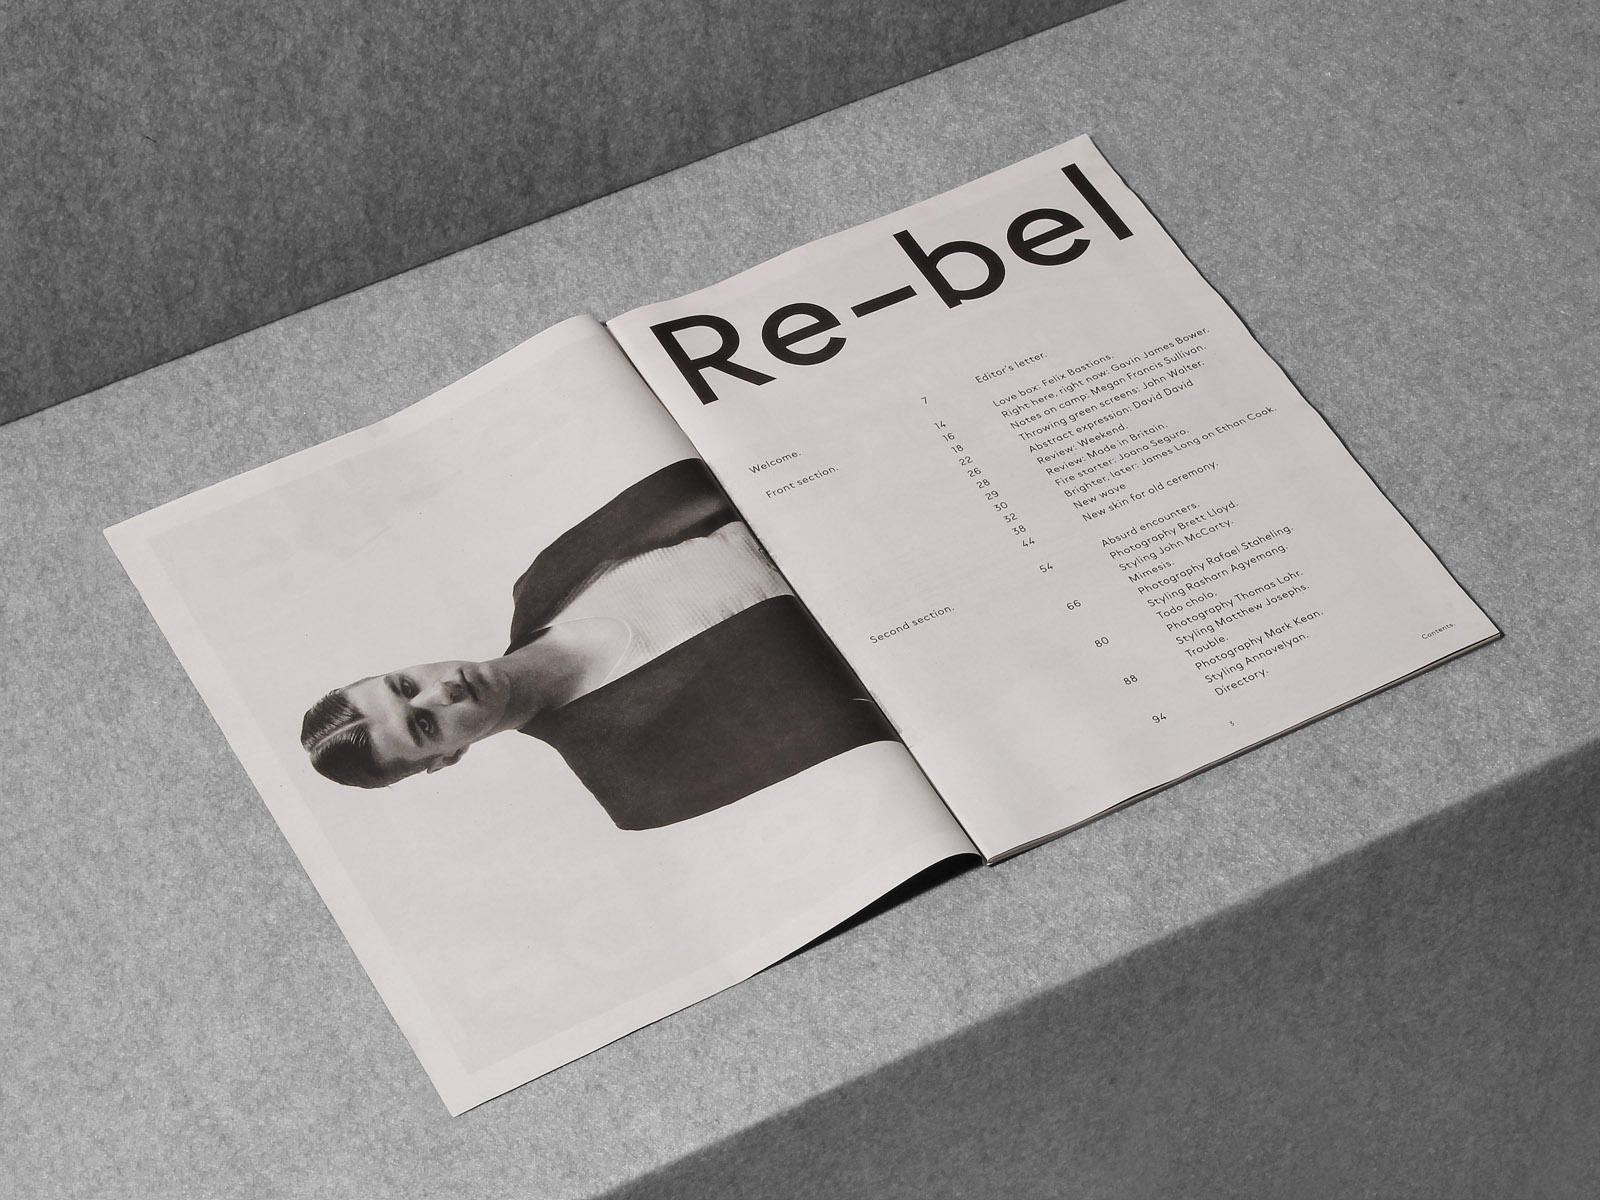 Re bel issue 2